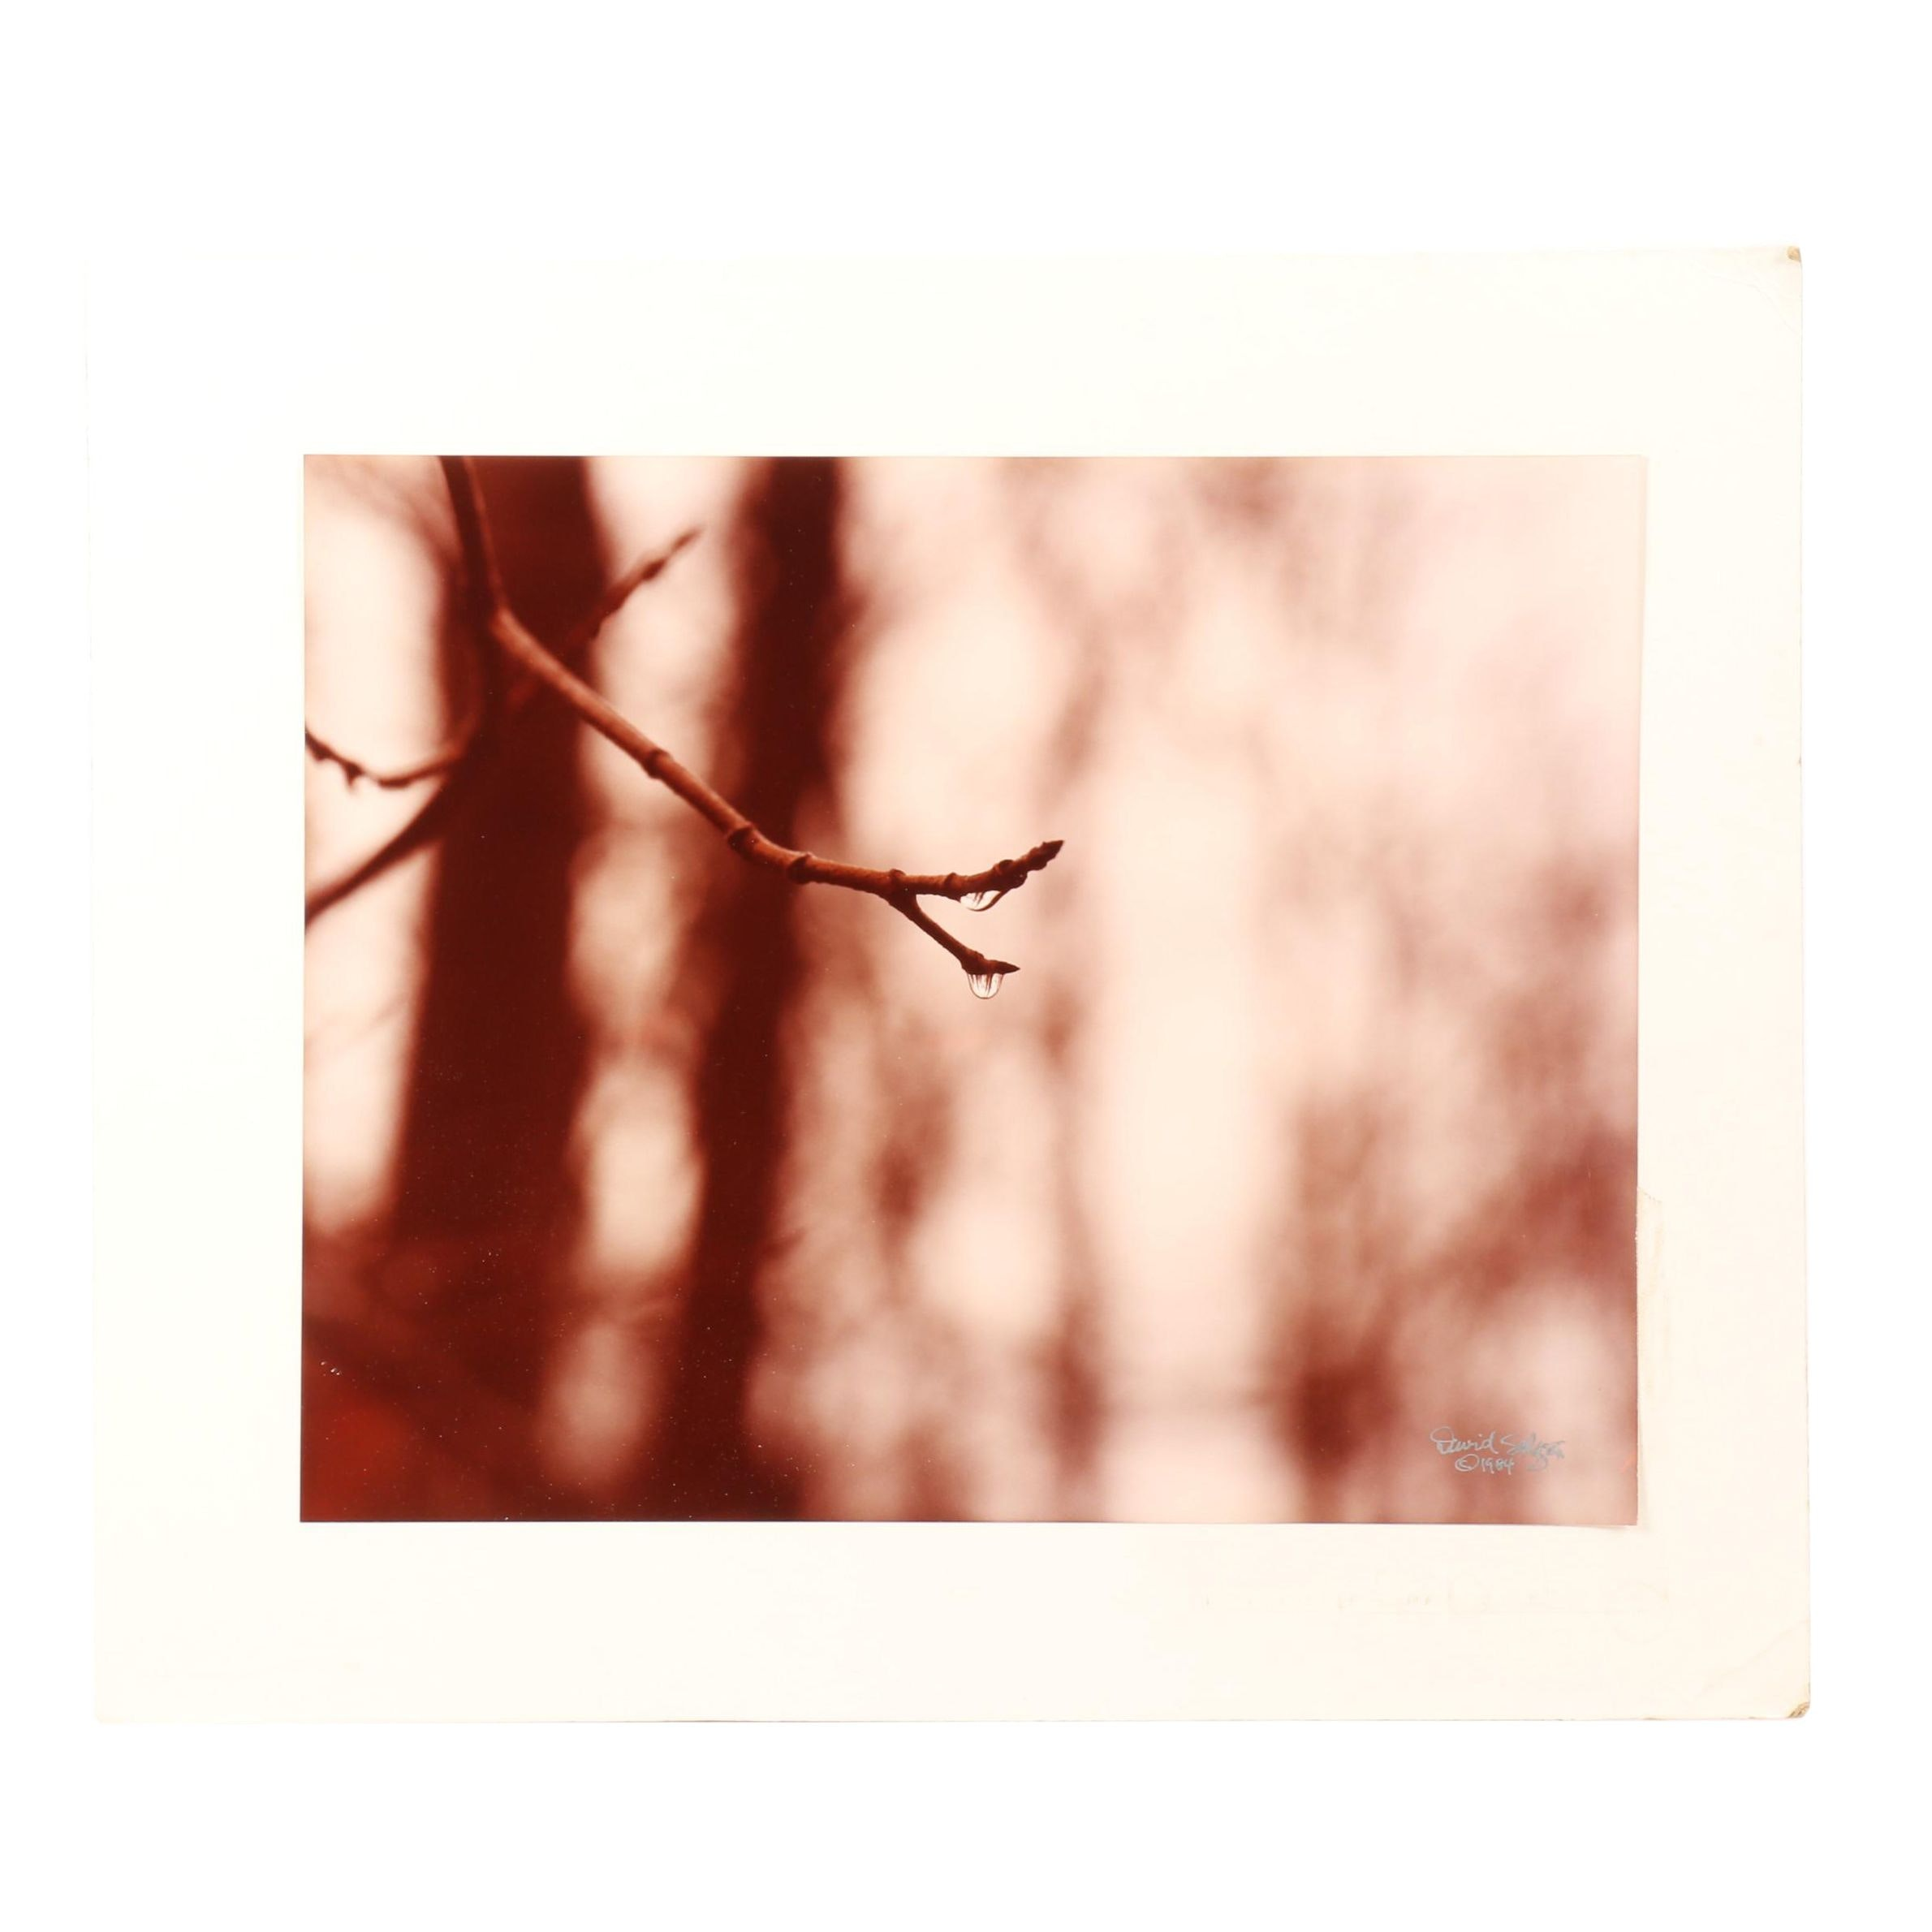 David Seltzer 1984 Photograph of Branch with Water Droplets